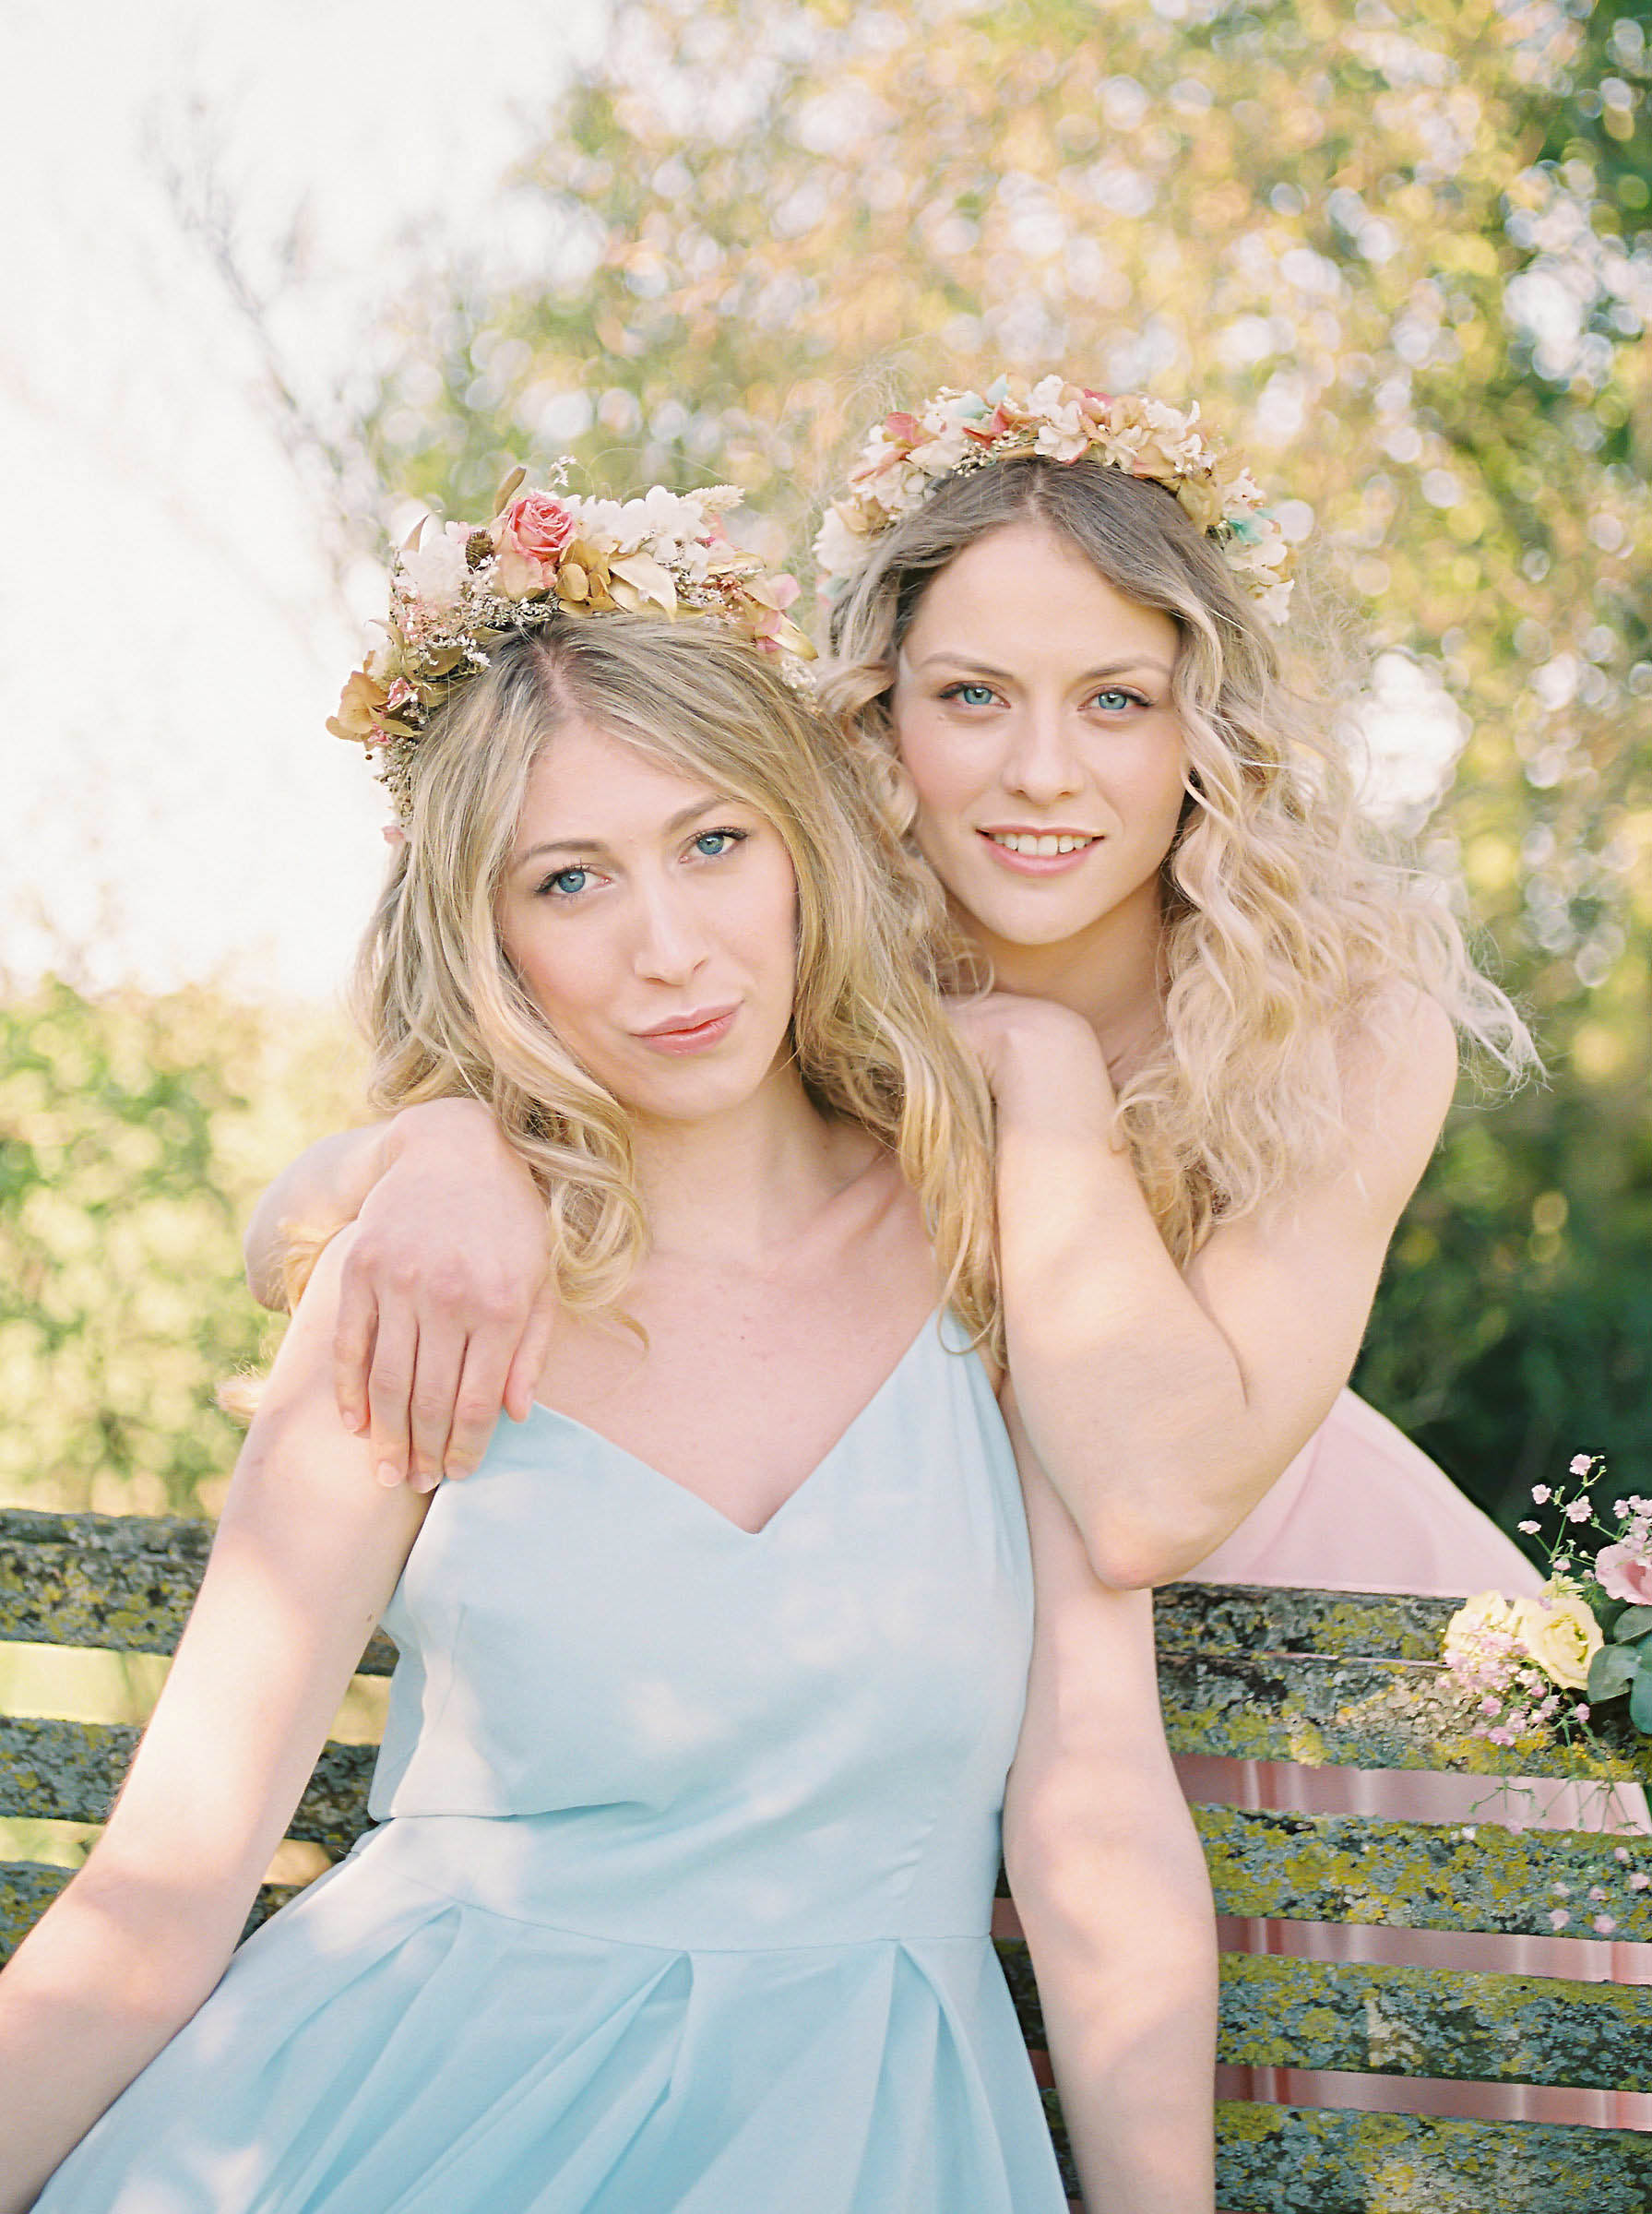 Amy O'Boyle Photography- Destination & UK Fine Art Film Wedding Photographer- TH&TH Bridesmaid Dress Shoot-4.jpg